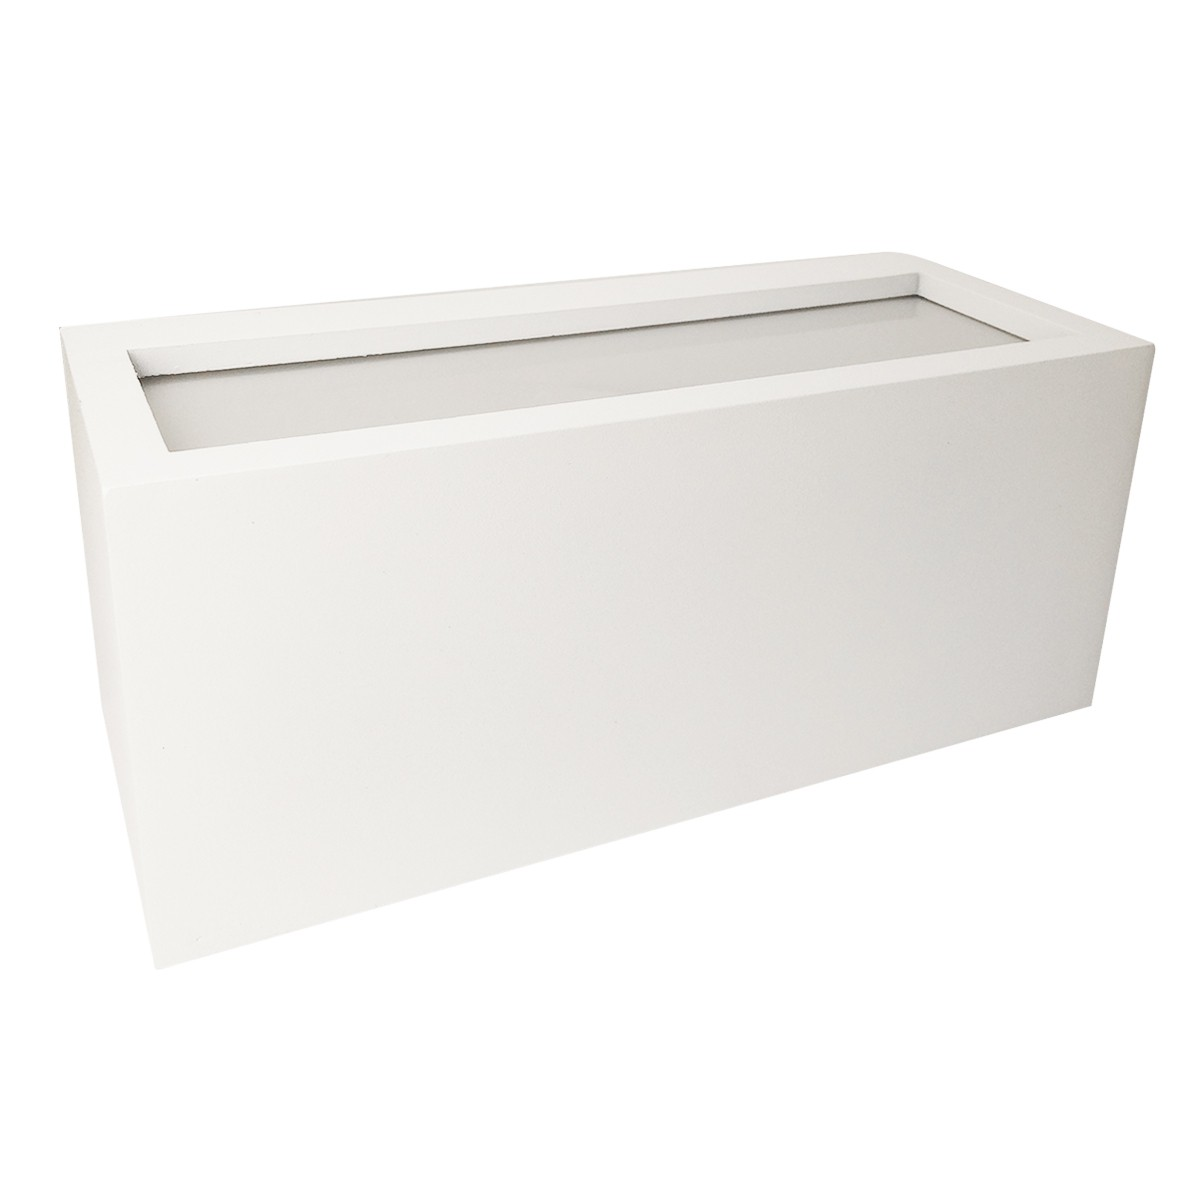 ISYLUCE Applique Metro IP54 E27 Bianco Led